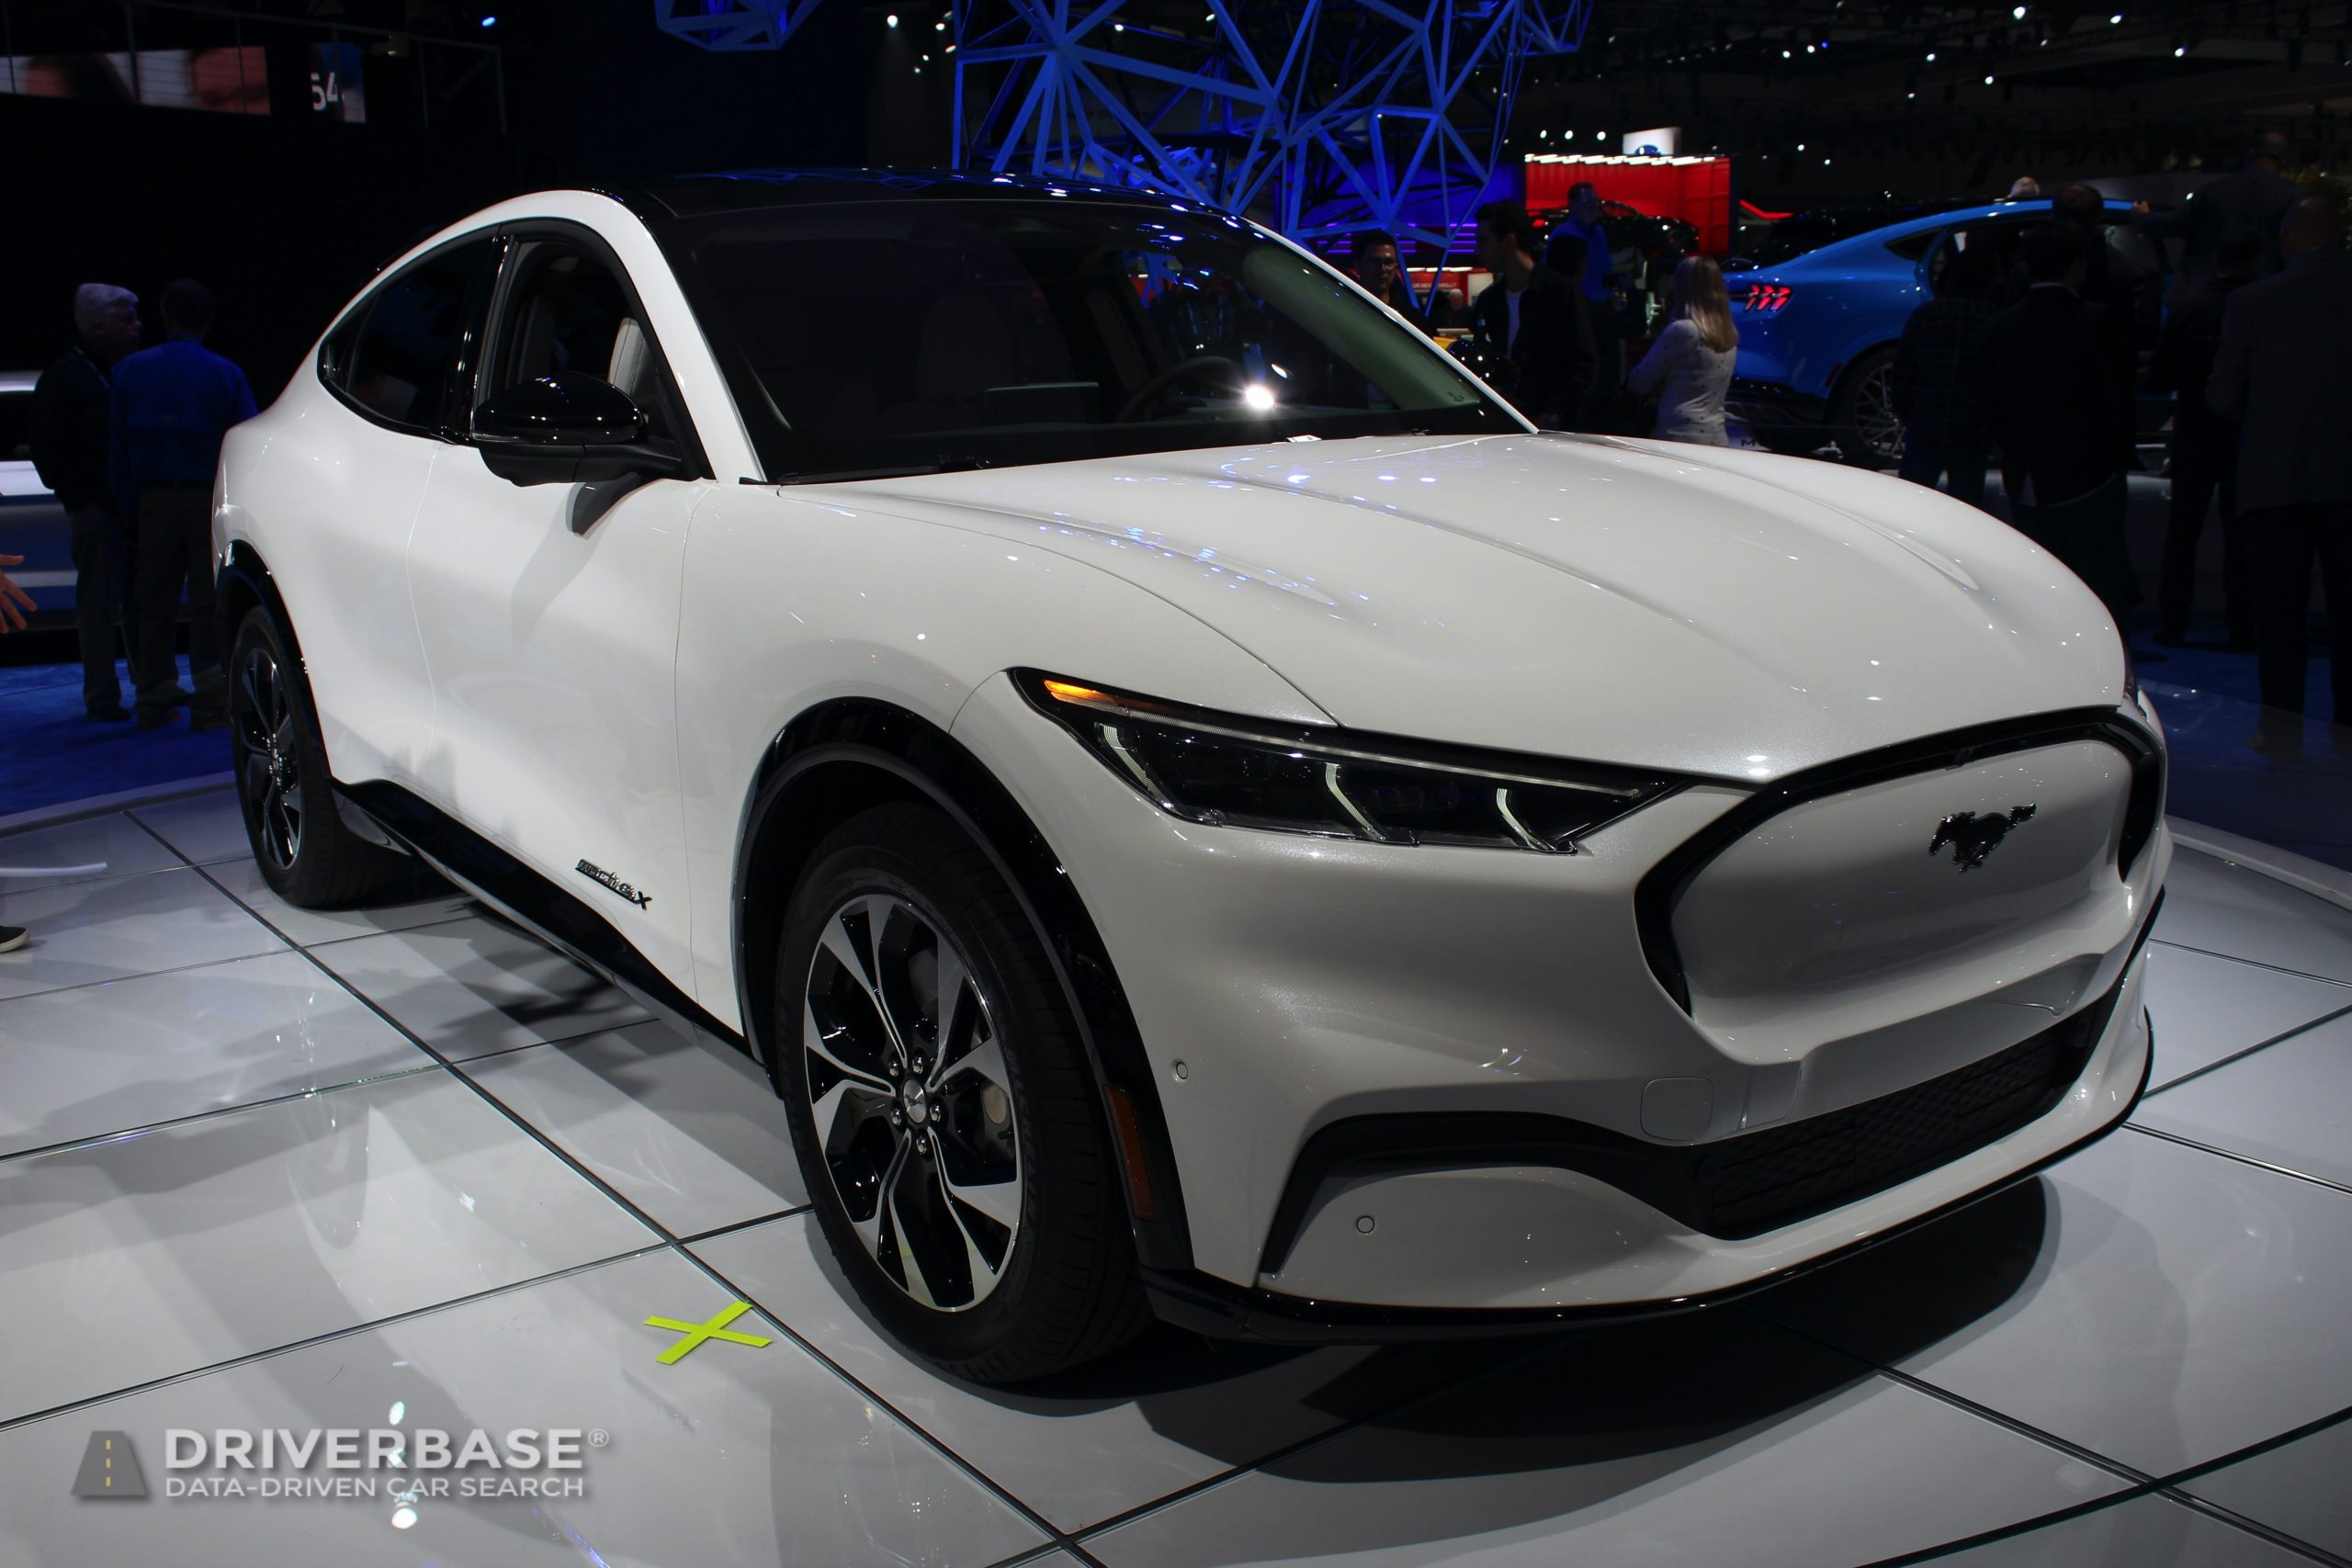 2021 Ford Mustang Mach-E Electric SUV Launch at the 2019 Los Angeles Auto Show